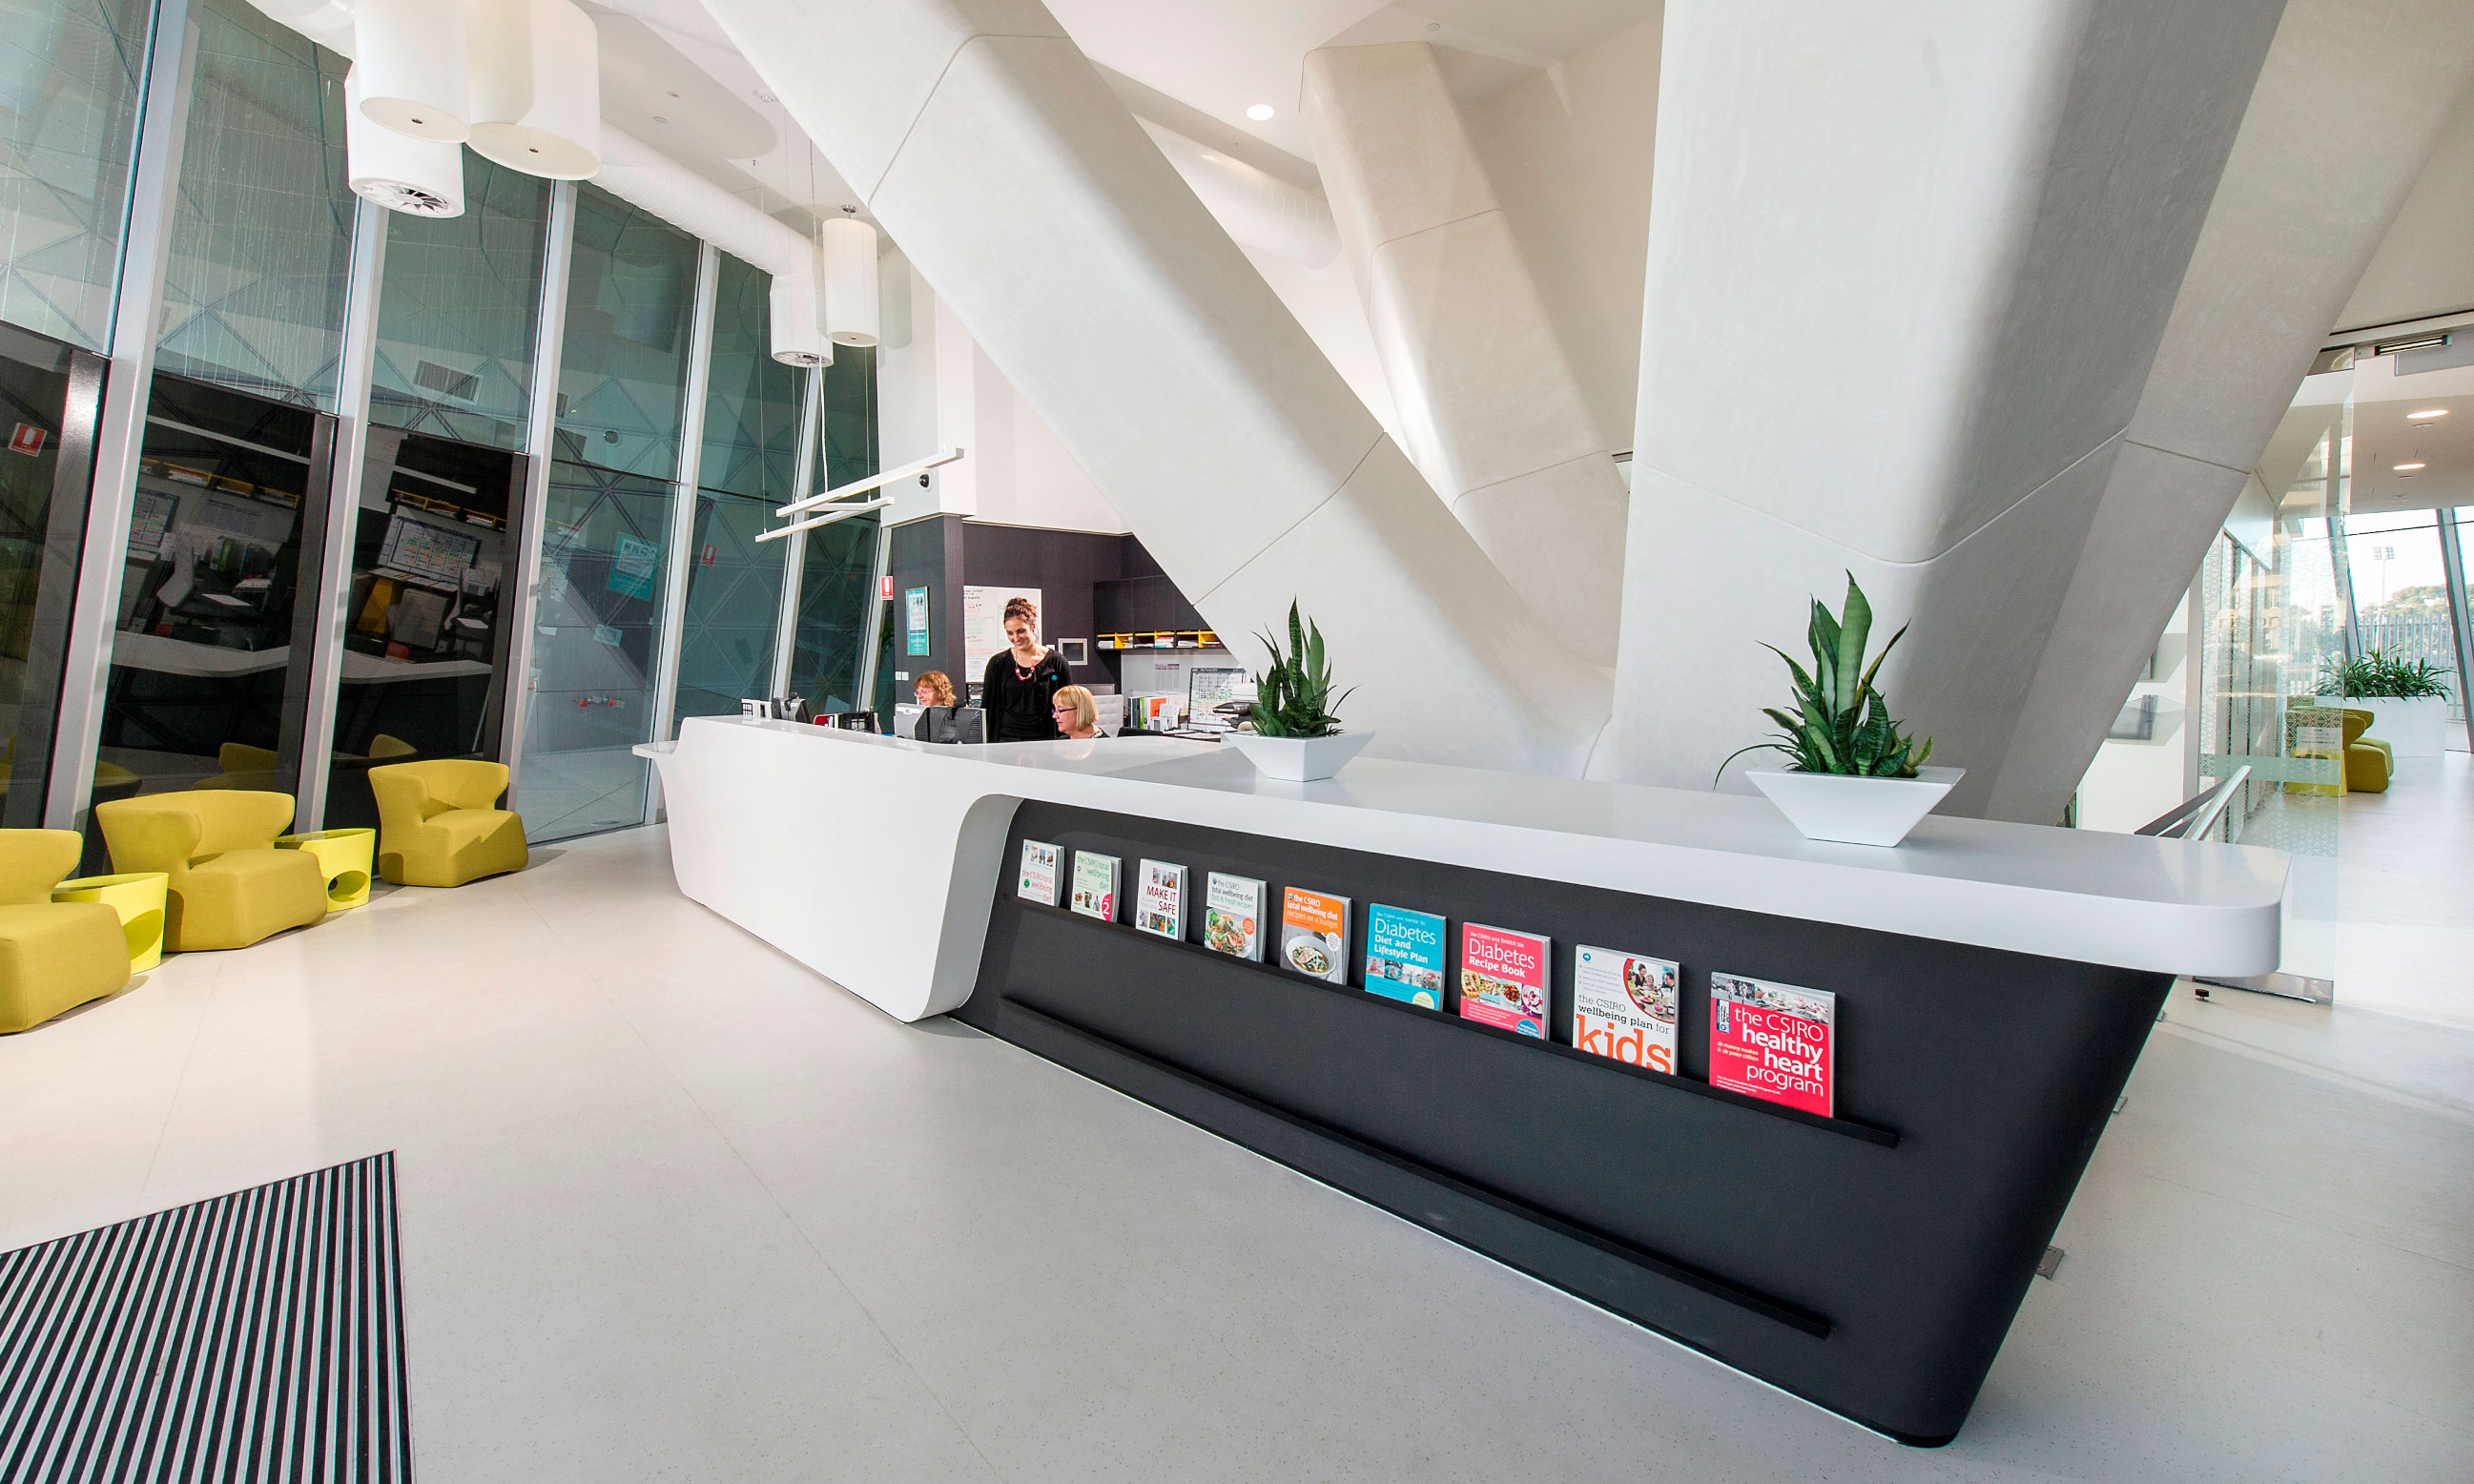 The reception area at the clinic is modern, has receptionists during opening hours and a collection of CSIRO diet books on display